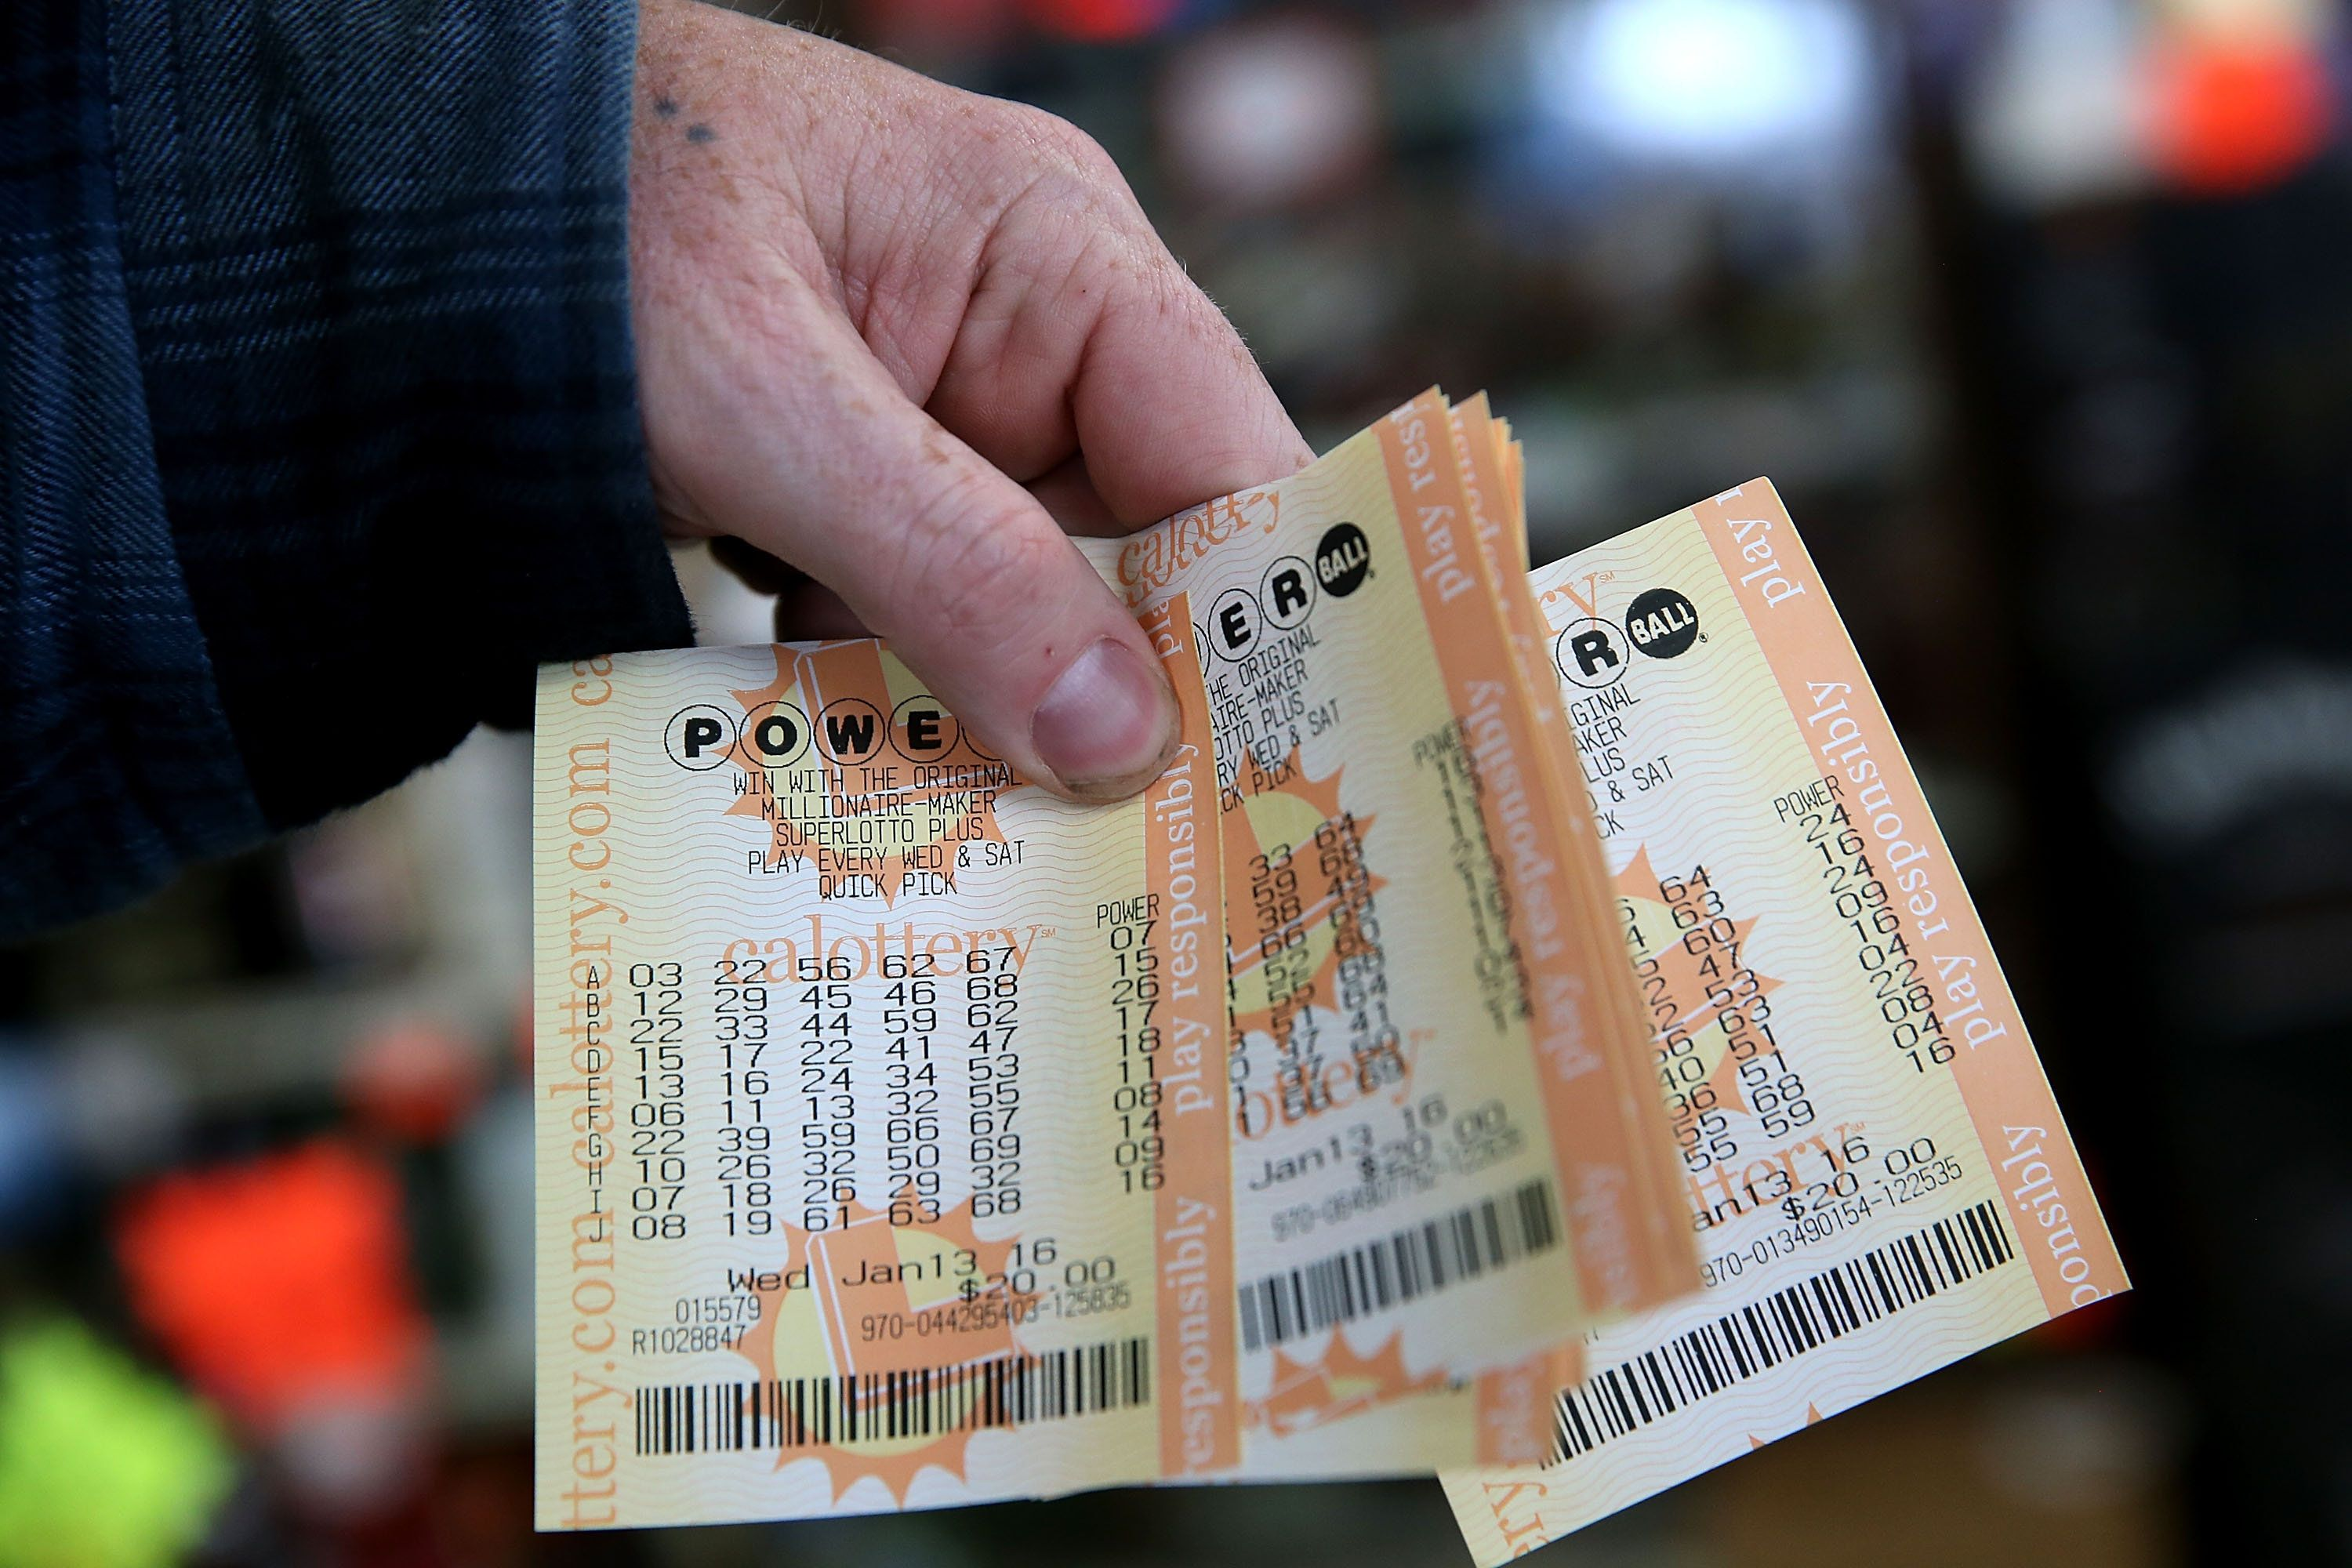 SAN LORENZO, CA - JANUARY 13:  A customer holds a handful of Powerball tickets at Kavanagh Liquors on January 13, 2016 in San Lorenzo, California. Dozens of people lined up outside of Kavanagh Liquors, a store that has had several multi-million dollar winners, to -purchase Powerball tickets in hopes of winning the estimated record-breaking $1.5 billion dollar jackpot.  (Photo by Justin Sullivan/Getty Images)